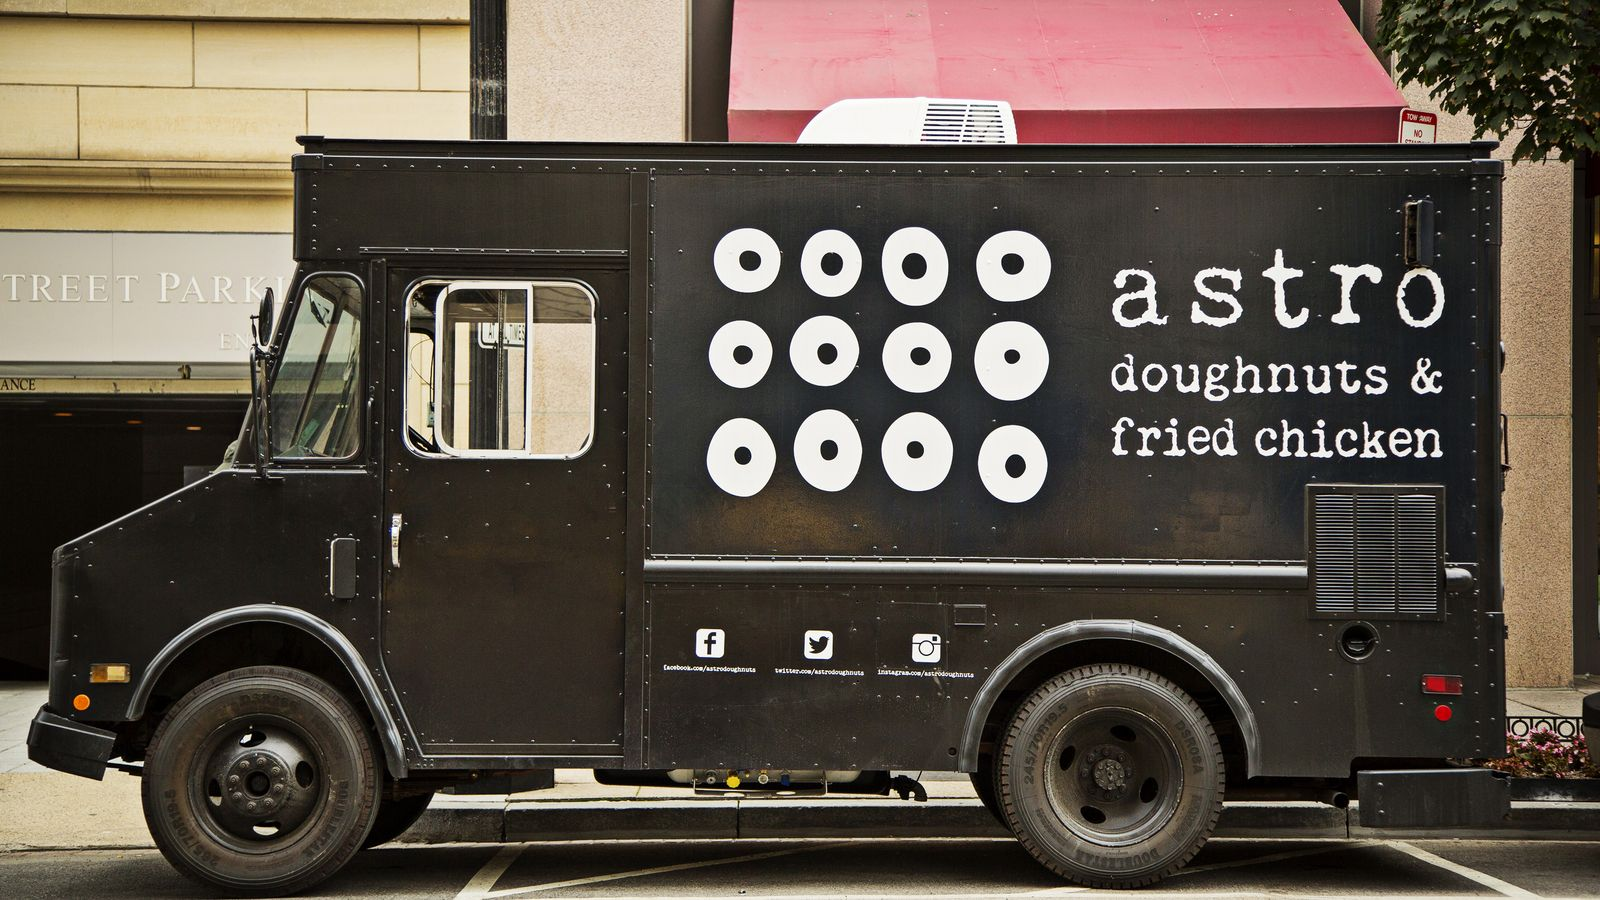 Astro Doughnuts & Fried Chicken Truck